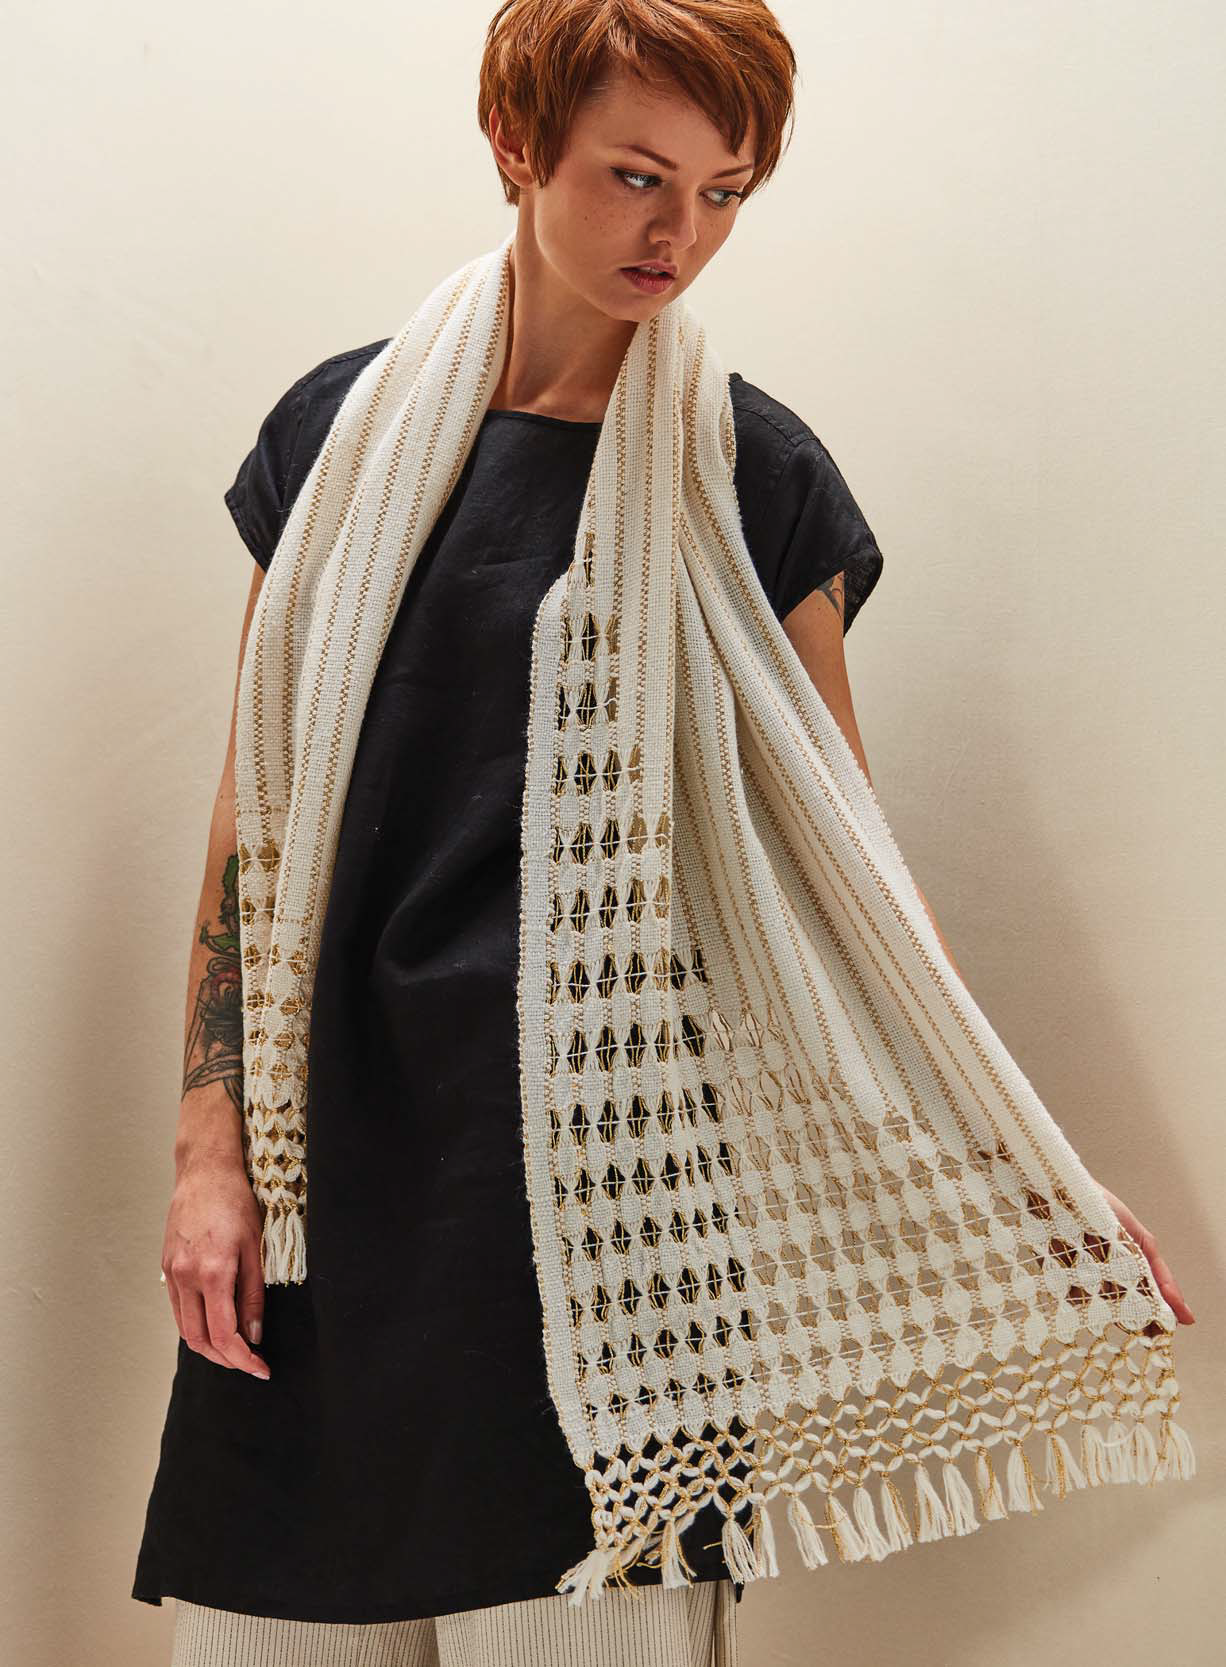 """Bring a little Gatsby-esque glamour with a show-stopping handwoven shawl. The hand-manipulated metallic lace """"bubbles"""" in this luxurious wrap were inspired by bubbles rising in a glass of champagne. Combining modified Brooks bouquet and Danish medallion techniques creates art-deco inspired panels of delicate lace in this rigid-heddle shawl. The knotted fringe finish is a nod to handwork found on shawls from the early twentieth century."""